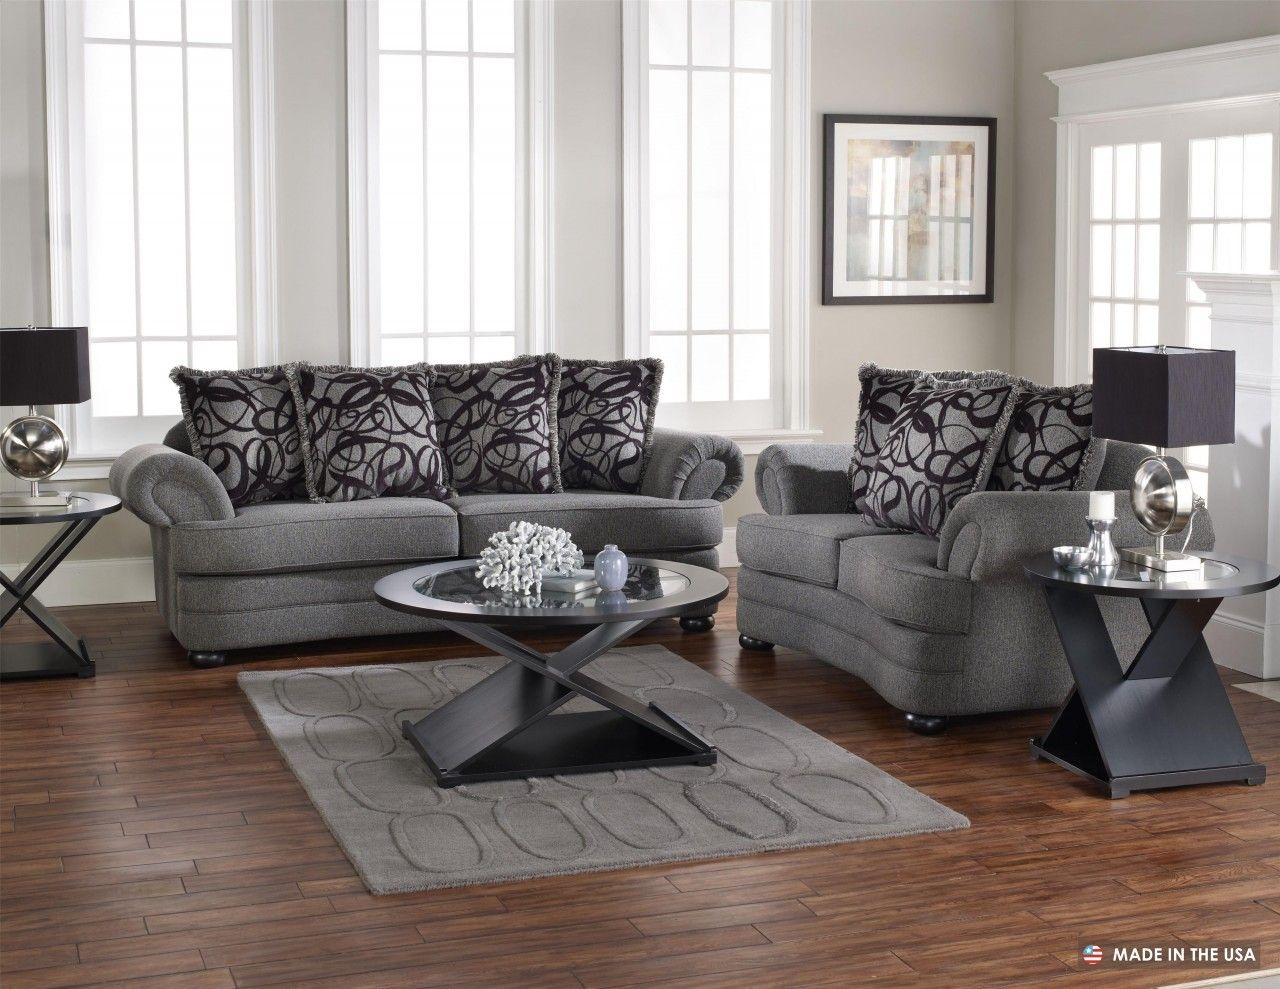 Wonderful Living Room Design With Grey Sofa Set And Cushion